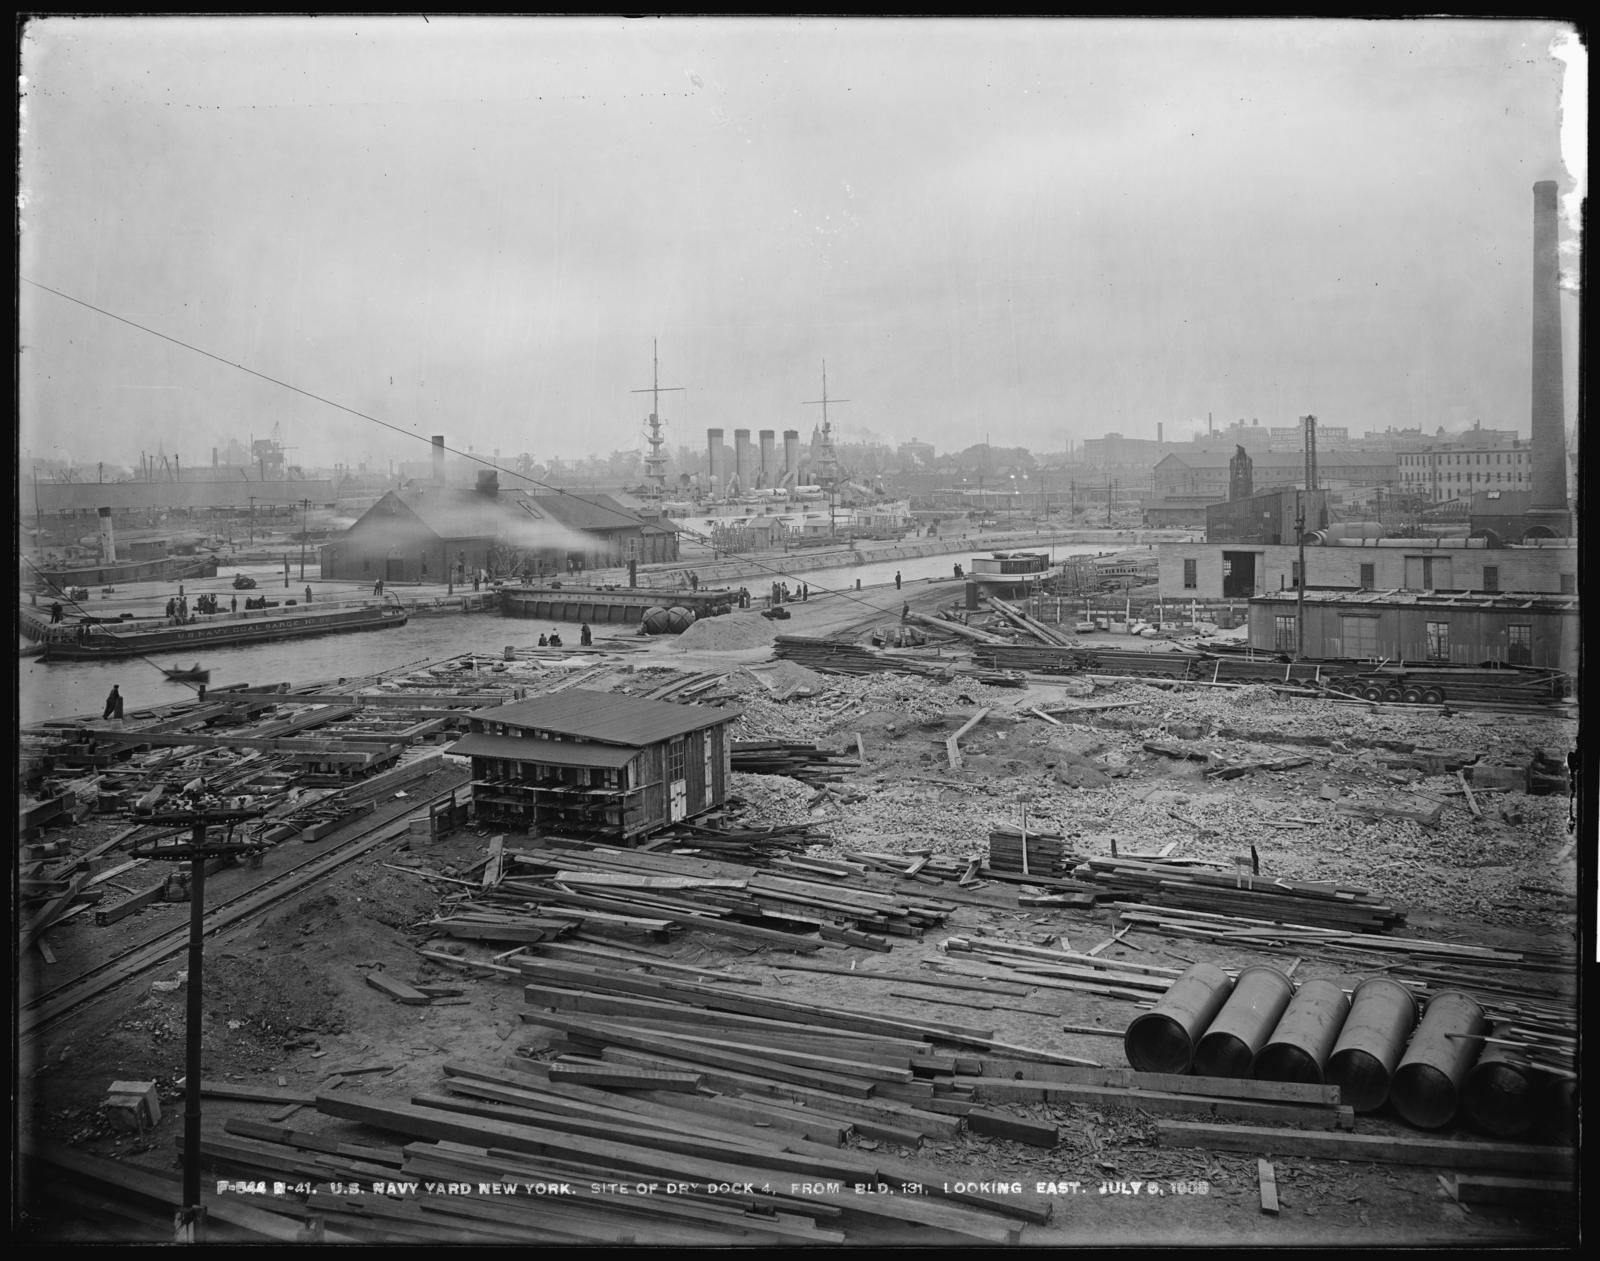 Site of Dry Dock 4, From Building 131, Looking East